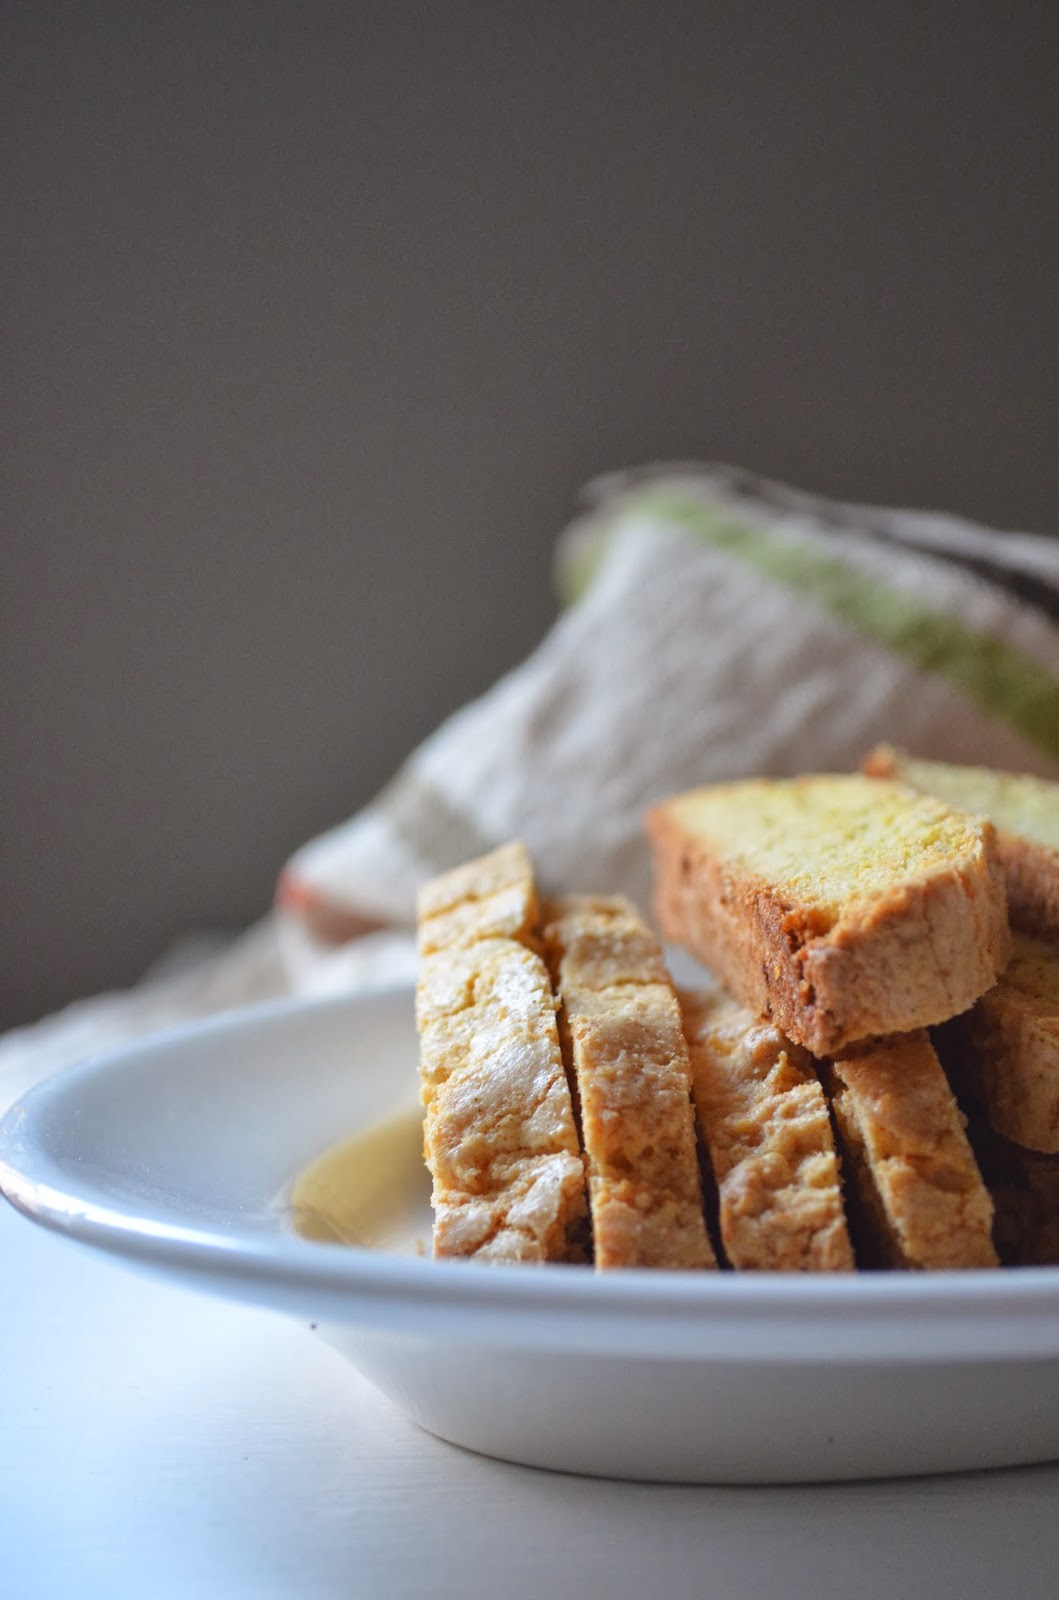 amour fou(d): lemon, olive oil, and almond biscotti.